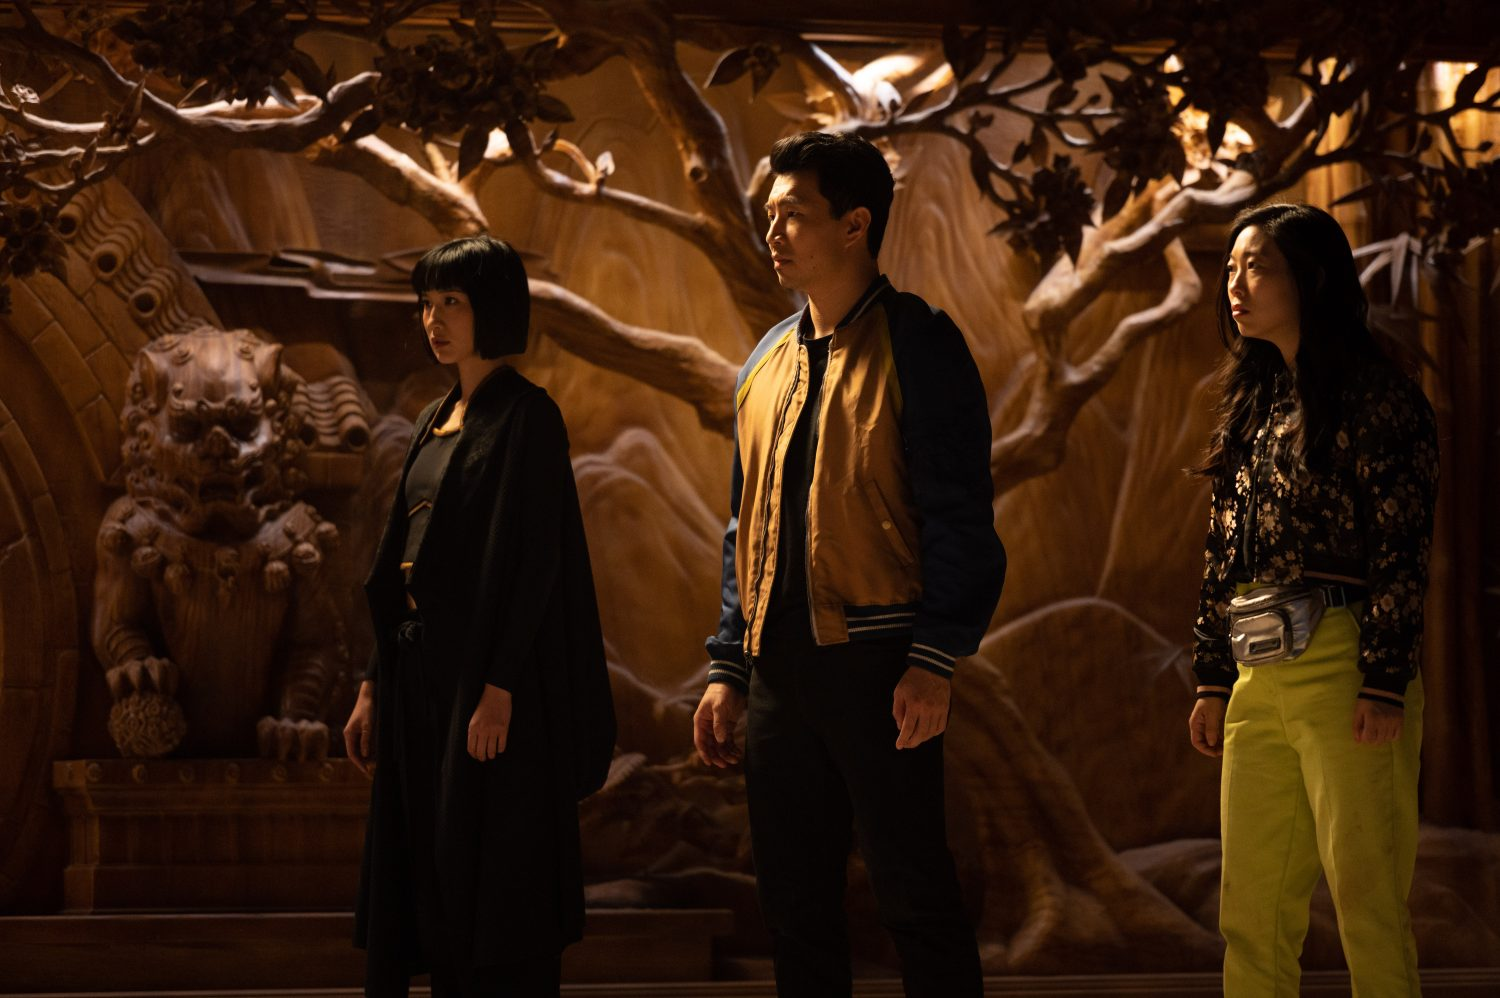 A still from 'Shang-Chi' of Shang-Chi, Xialing, and Katy learning about Ta Lo from Wenwu